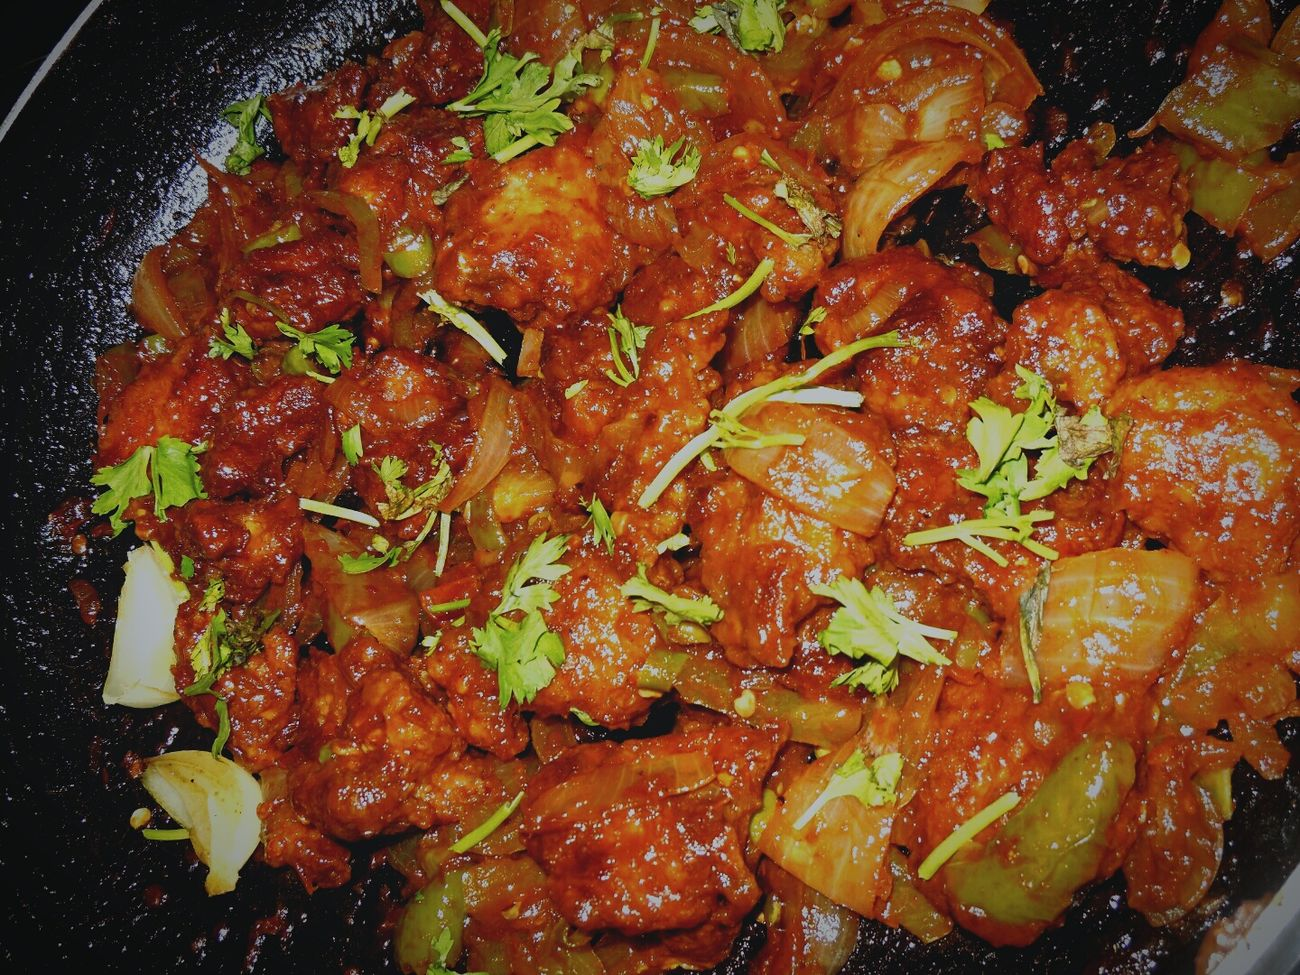 What could be better than juicy fiery chilly chicken with coriander leaves?Food Porn Awards Check This Out Enjoying Life Hanging Out Taking Photos